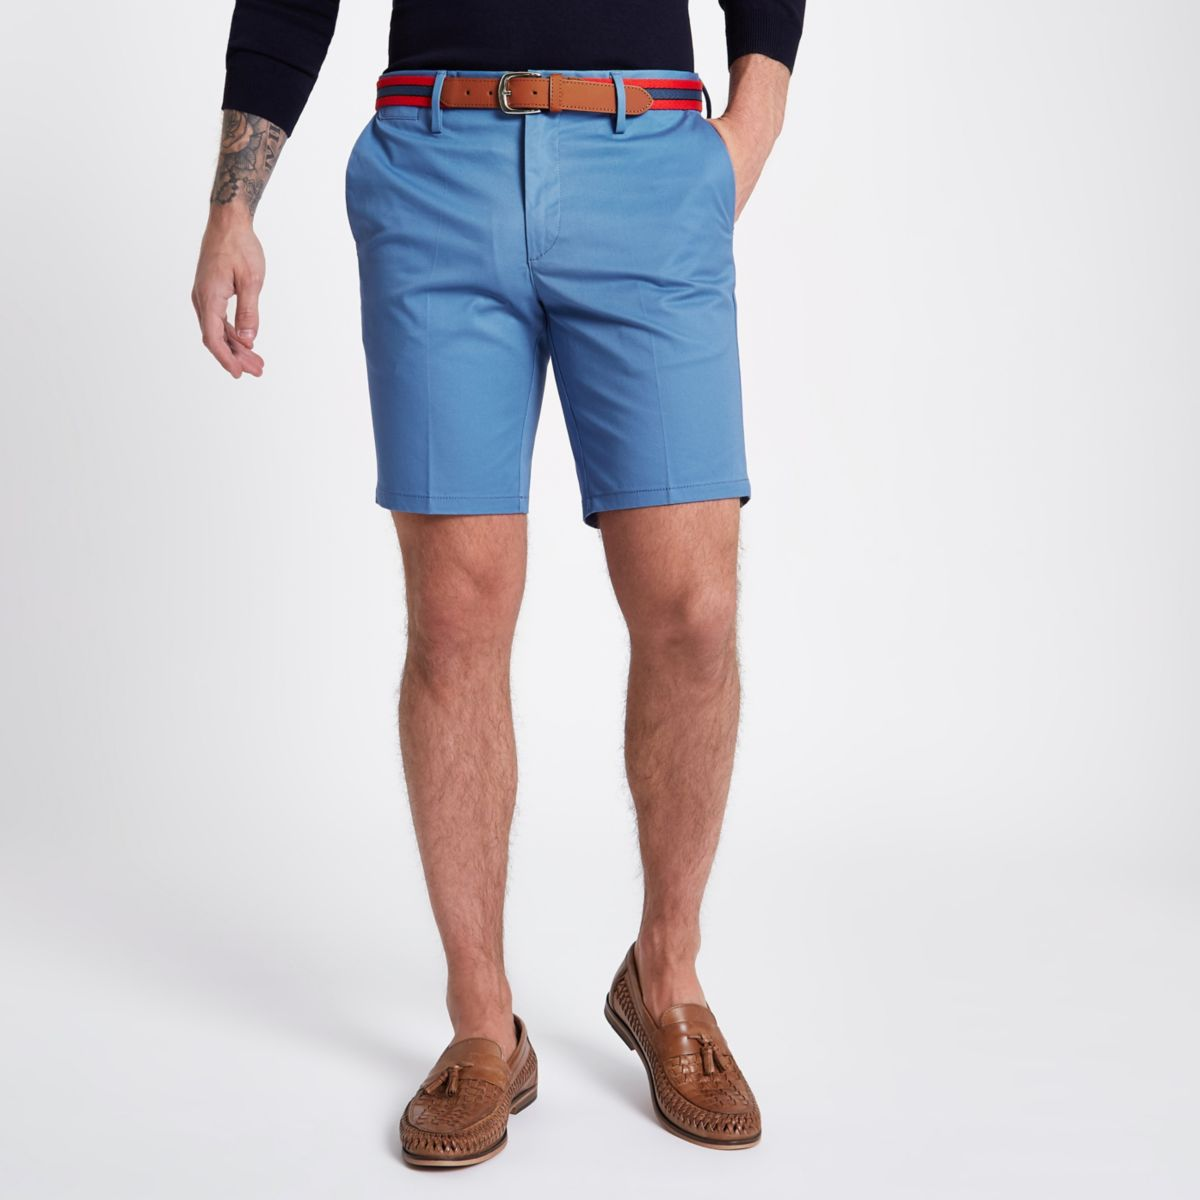 Blue belted slim fit chino shorts